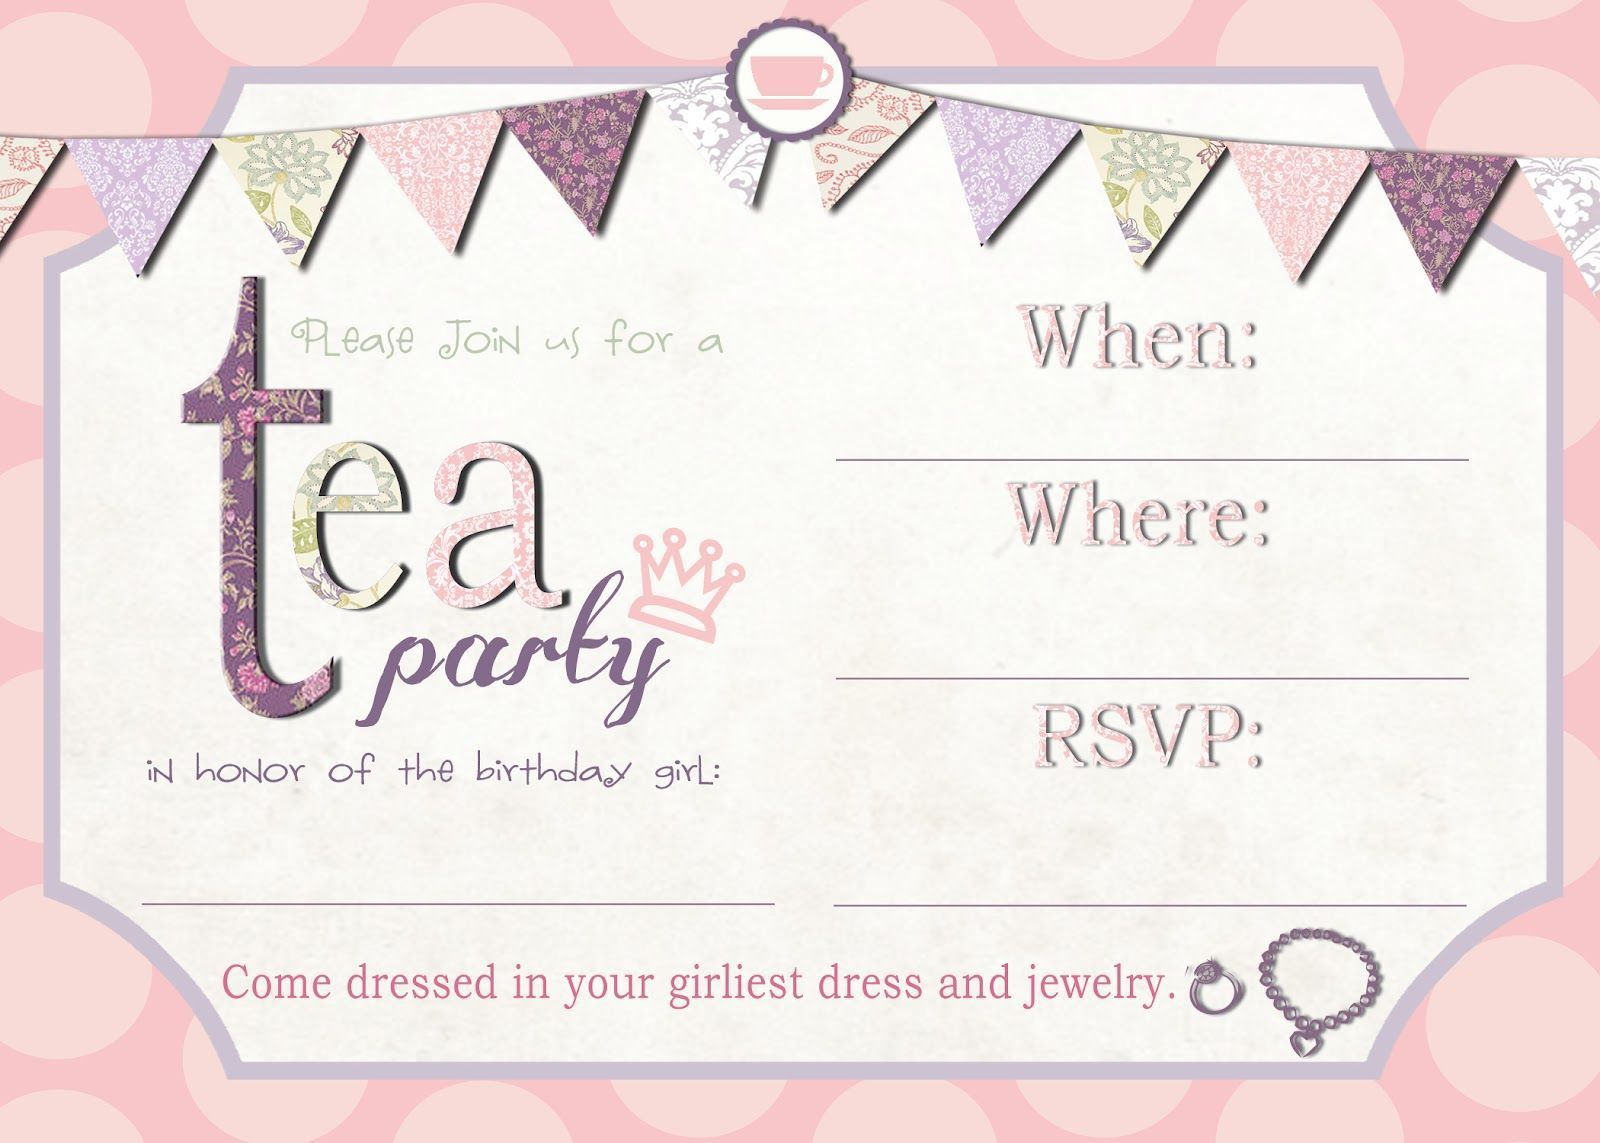 001 Awful Tea Party Invitation Template High Definition  Online LetterFull